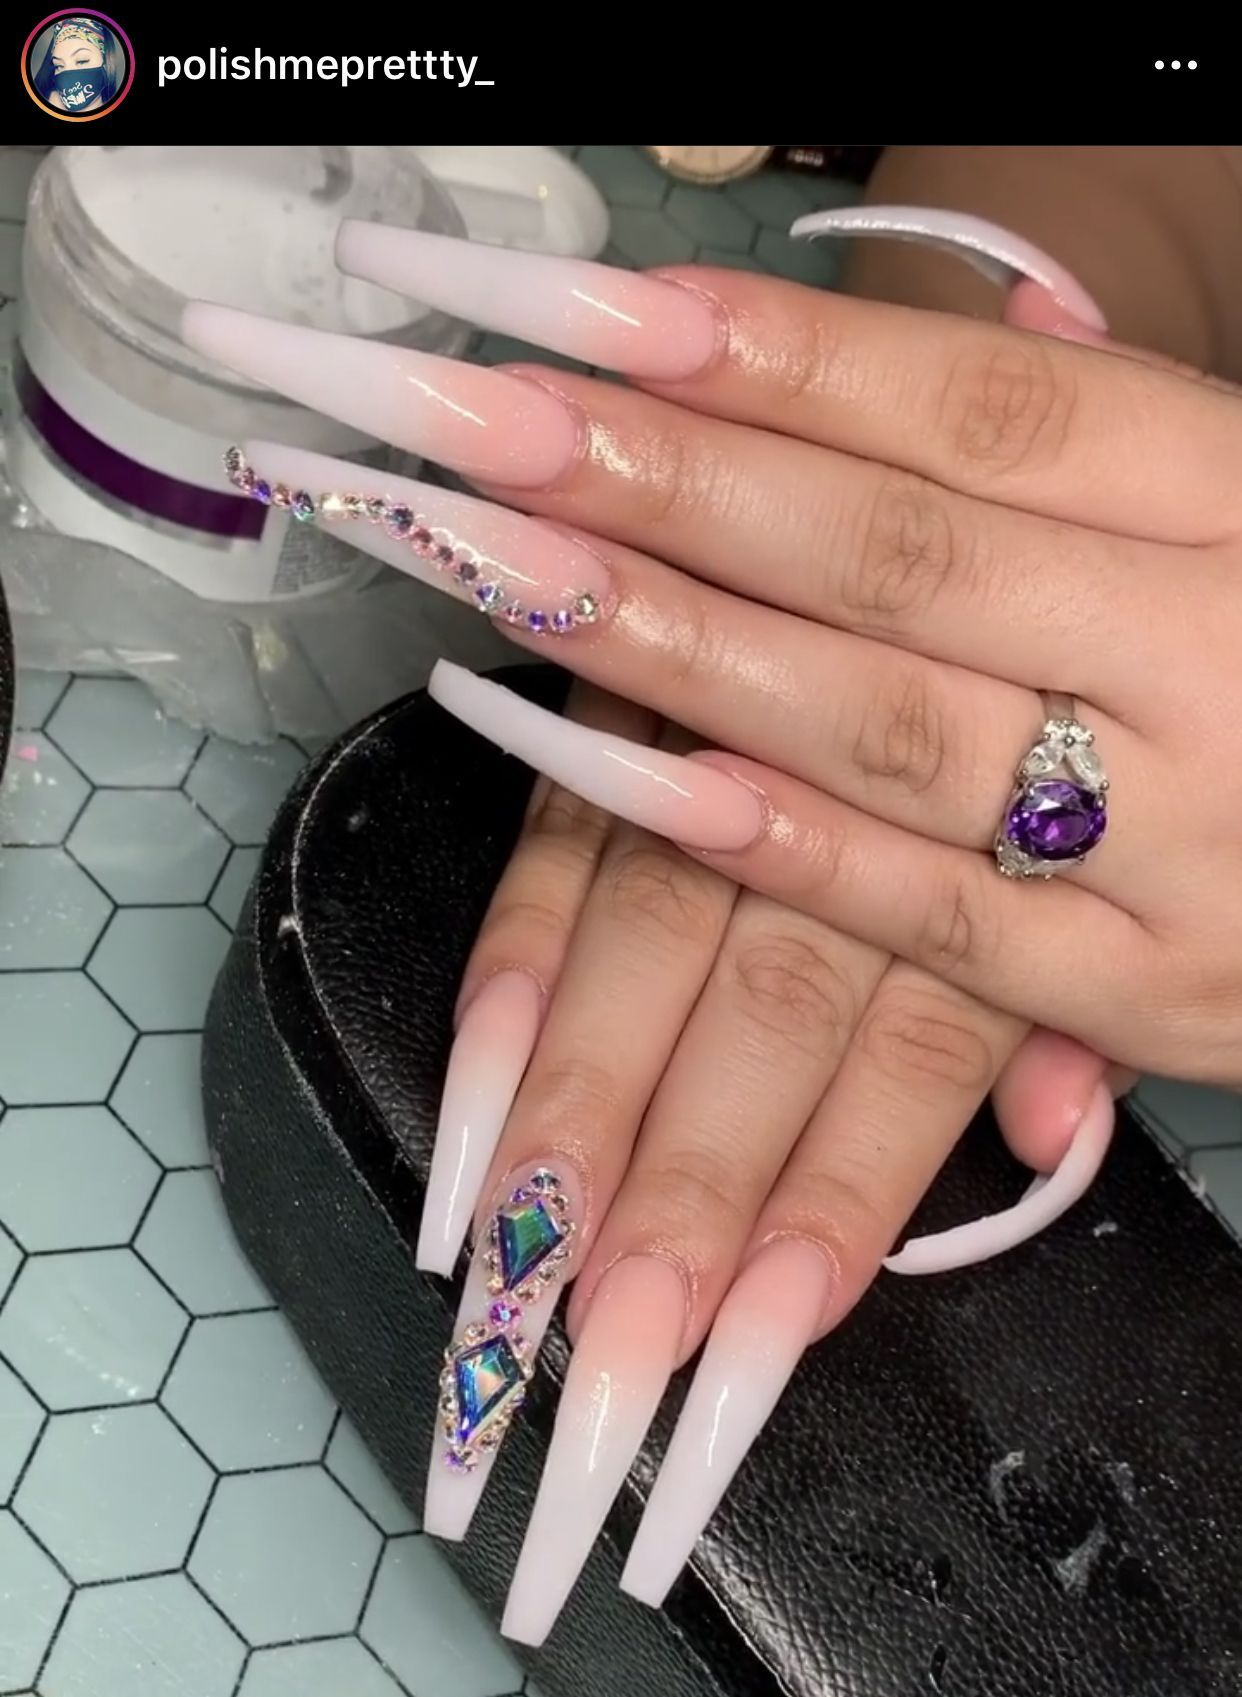 Pin By Lauracasanova On Nails In 2020 French Manicure Acrylic Nails Long Acrylic Nails Bling Acrylic Nails